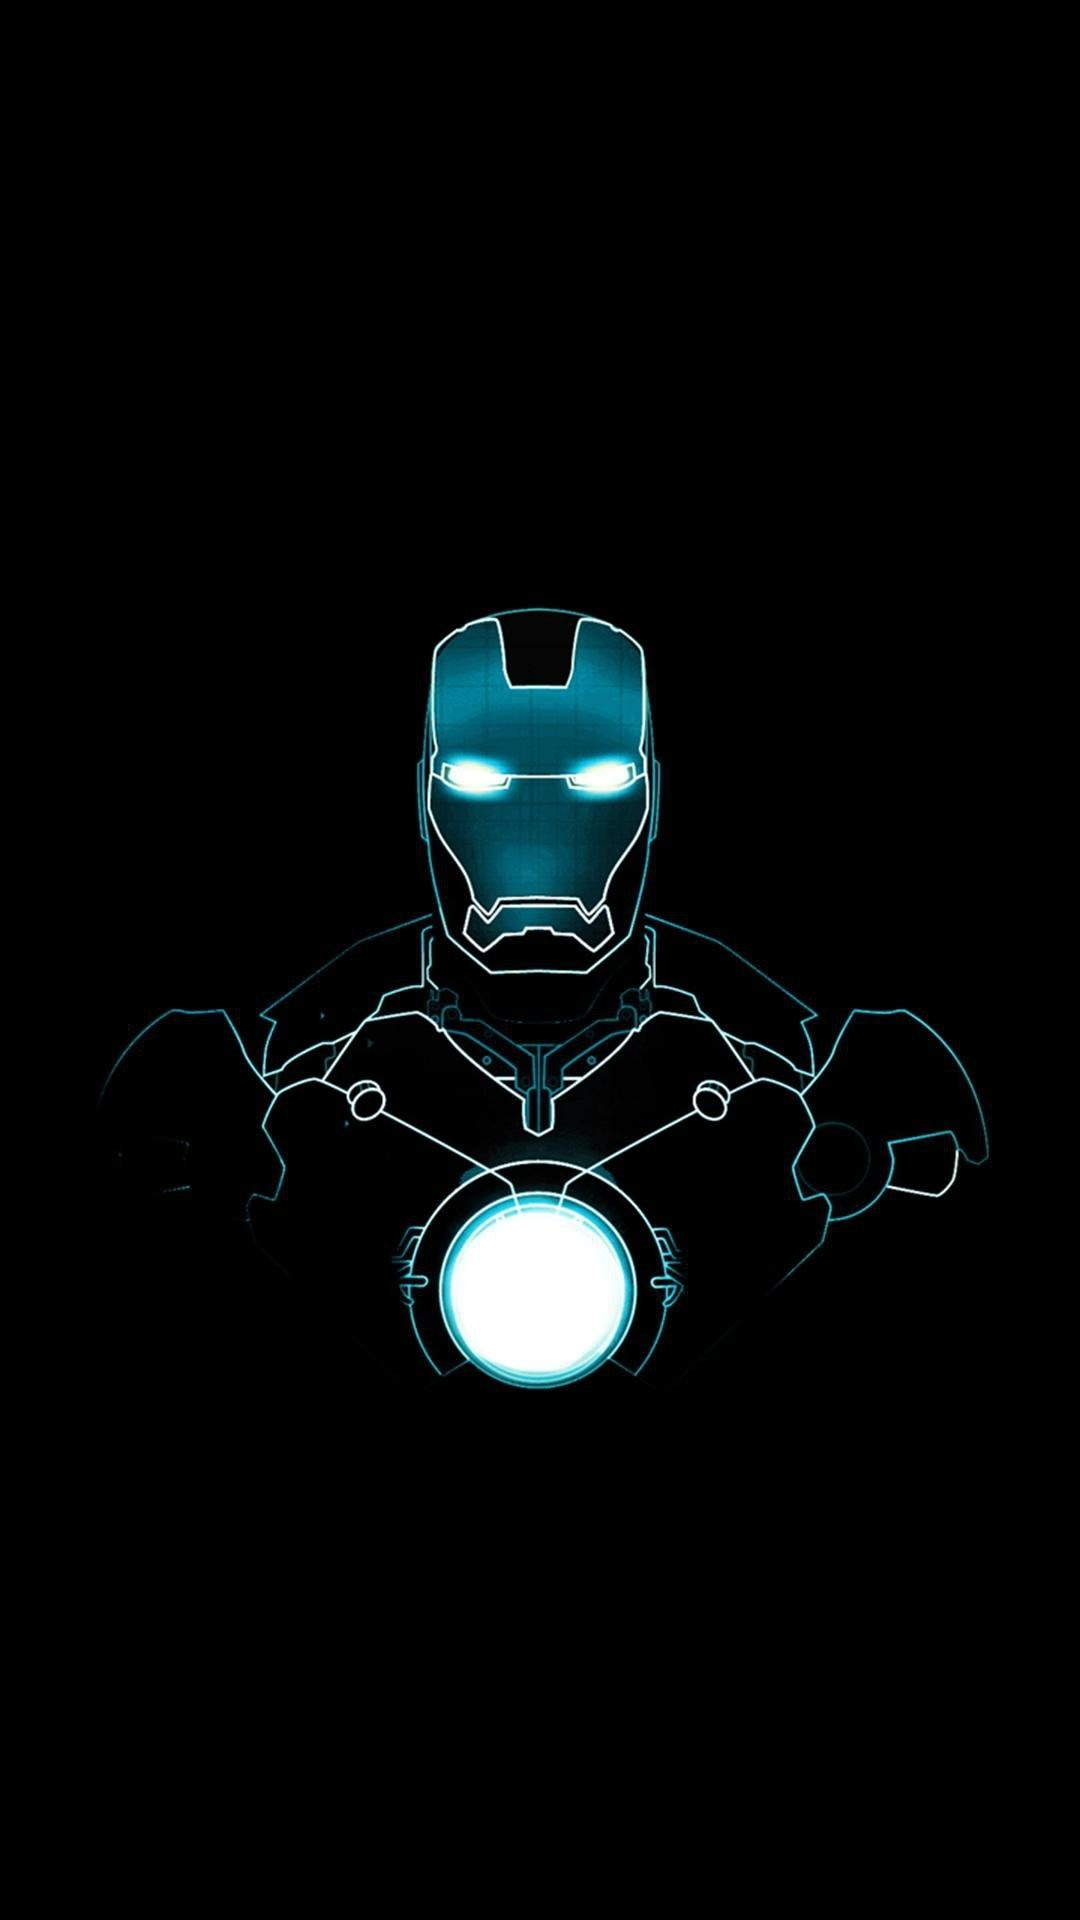 Ironman hd wallpapers for iphone 7 wallpapers pictures for Wallpaper hd iphone 7